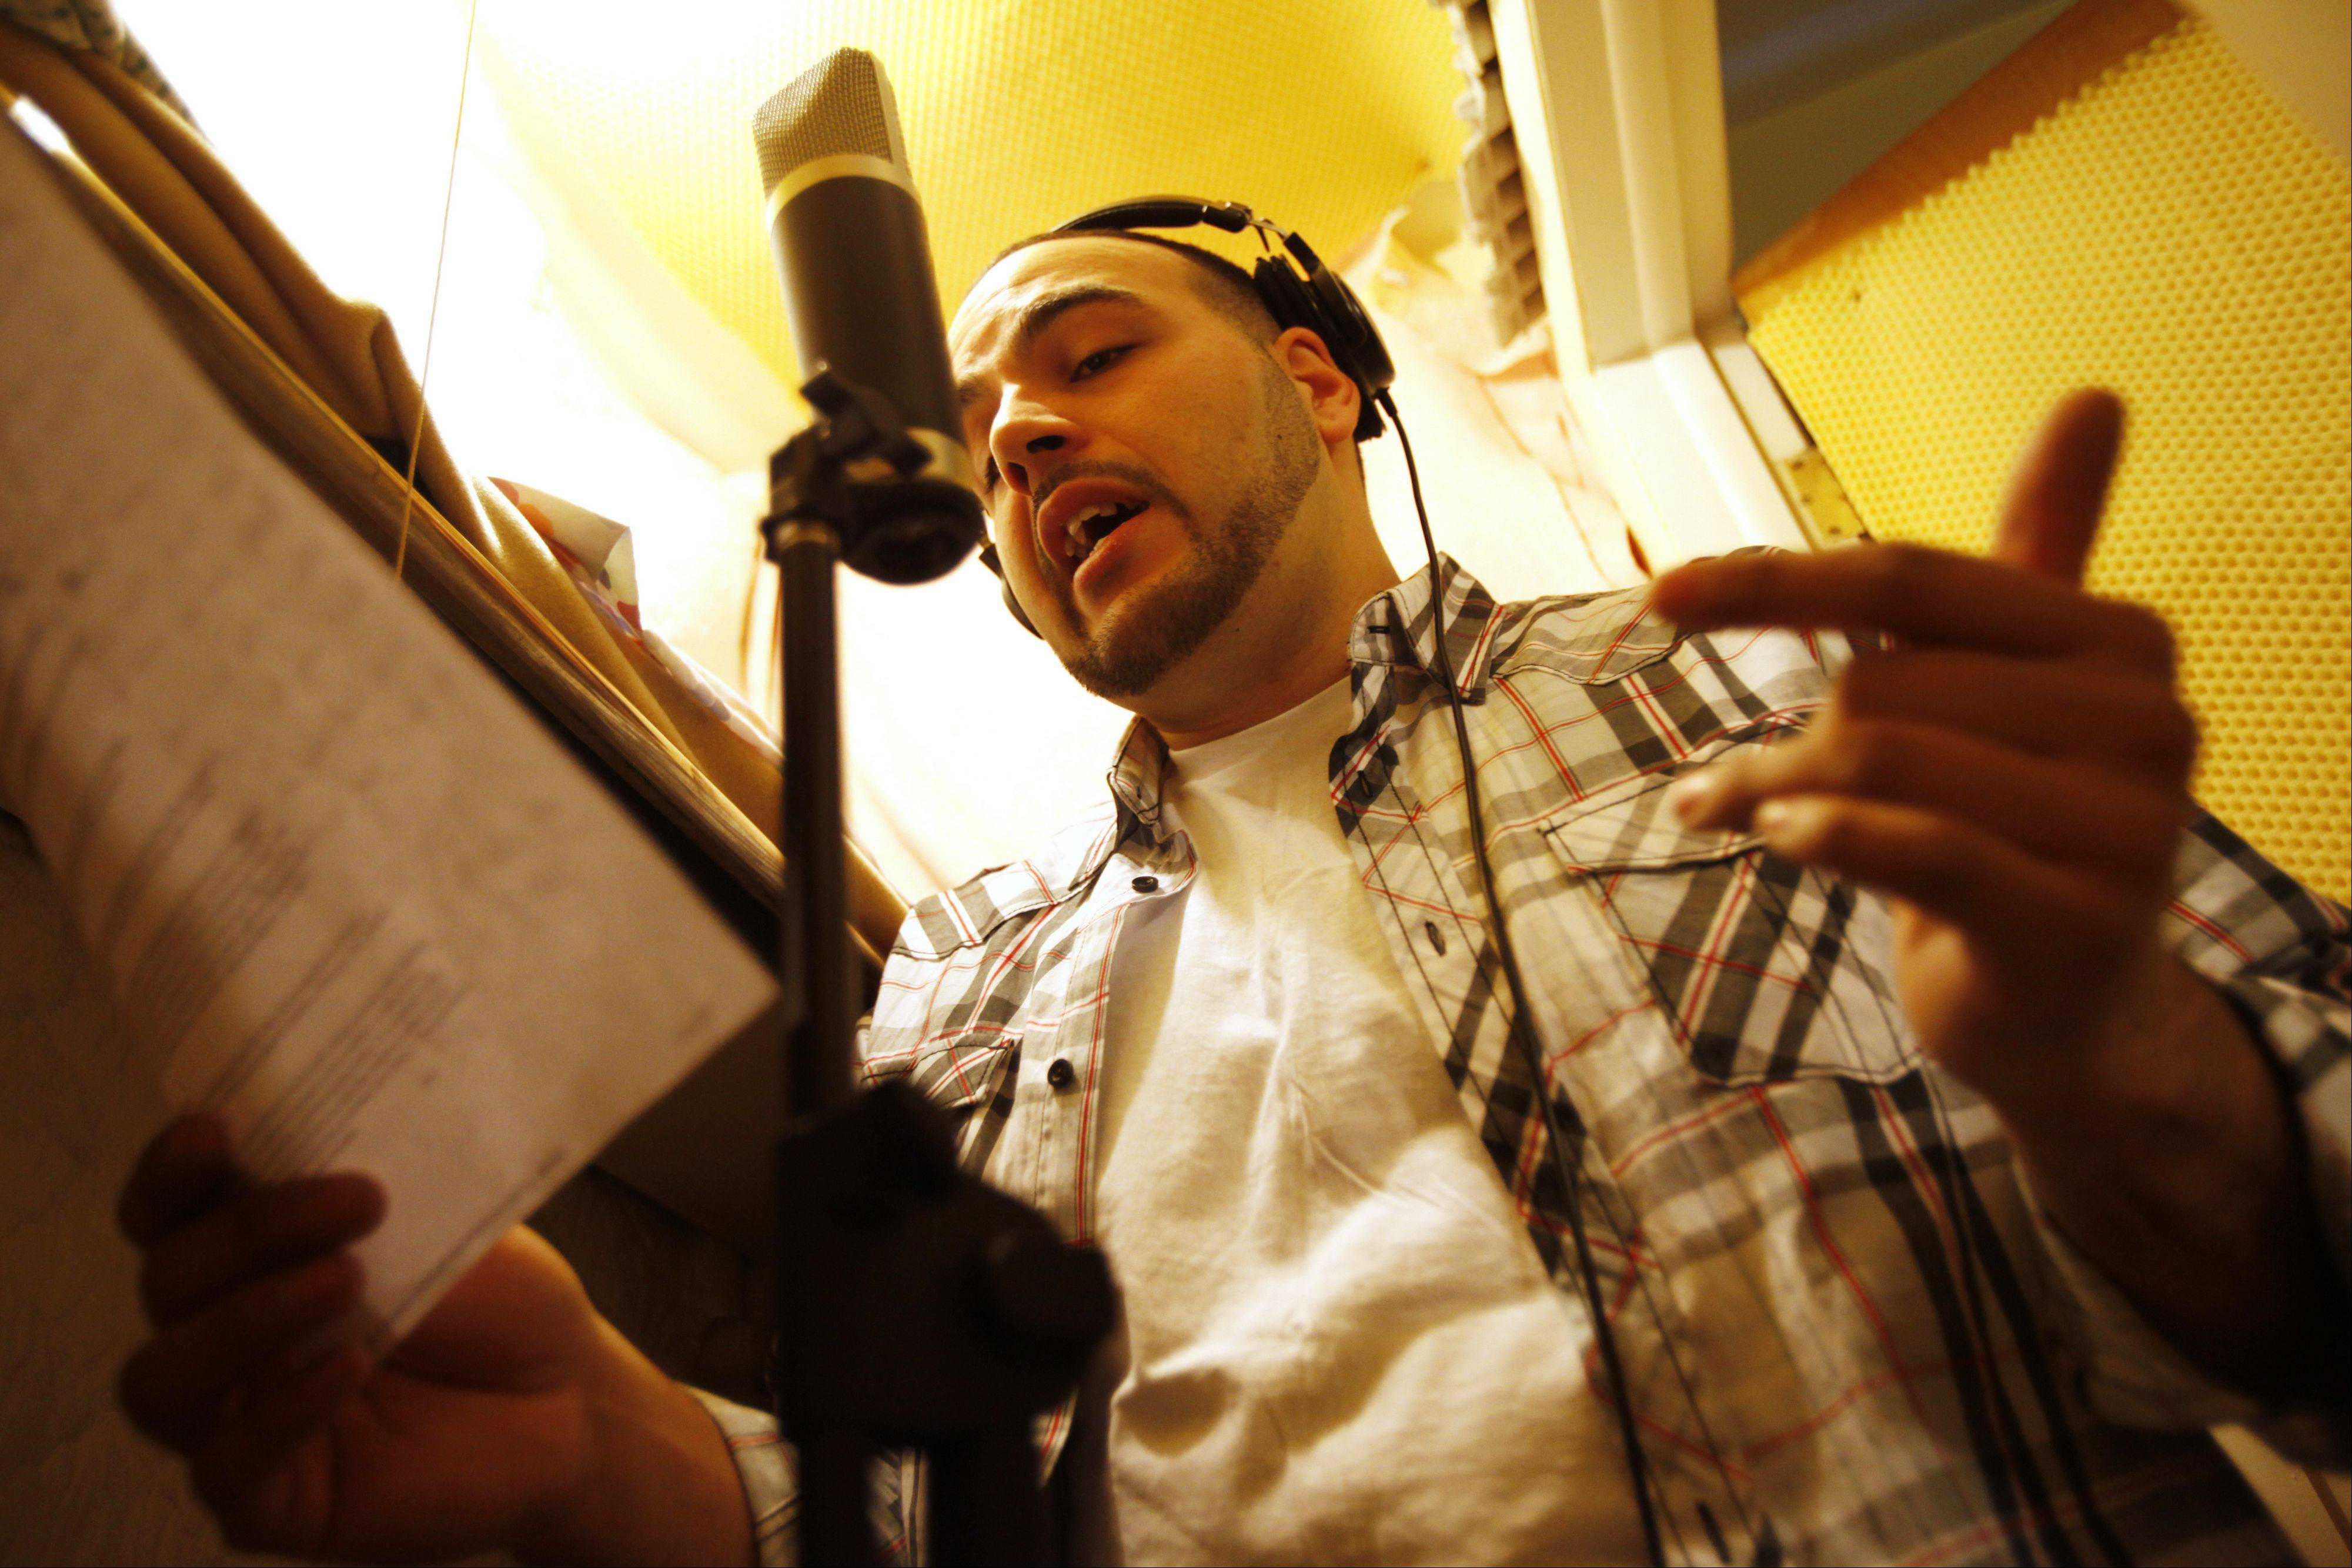 In a tiny closet lined with foam rubber strips and towels, Angel Chairez has recorded some of his songs at the East Dundee home of his producer Donovan James.